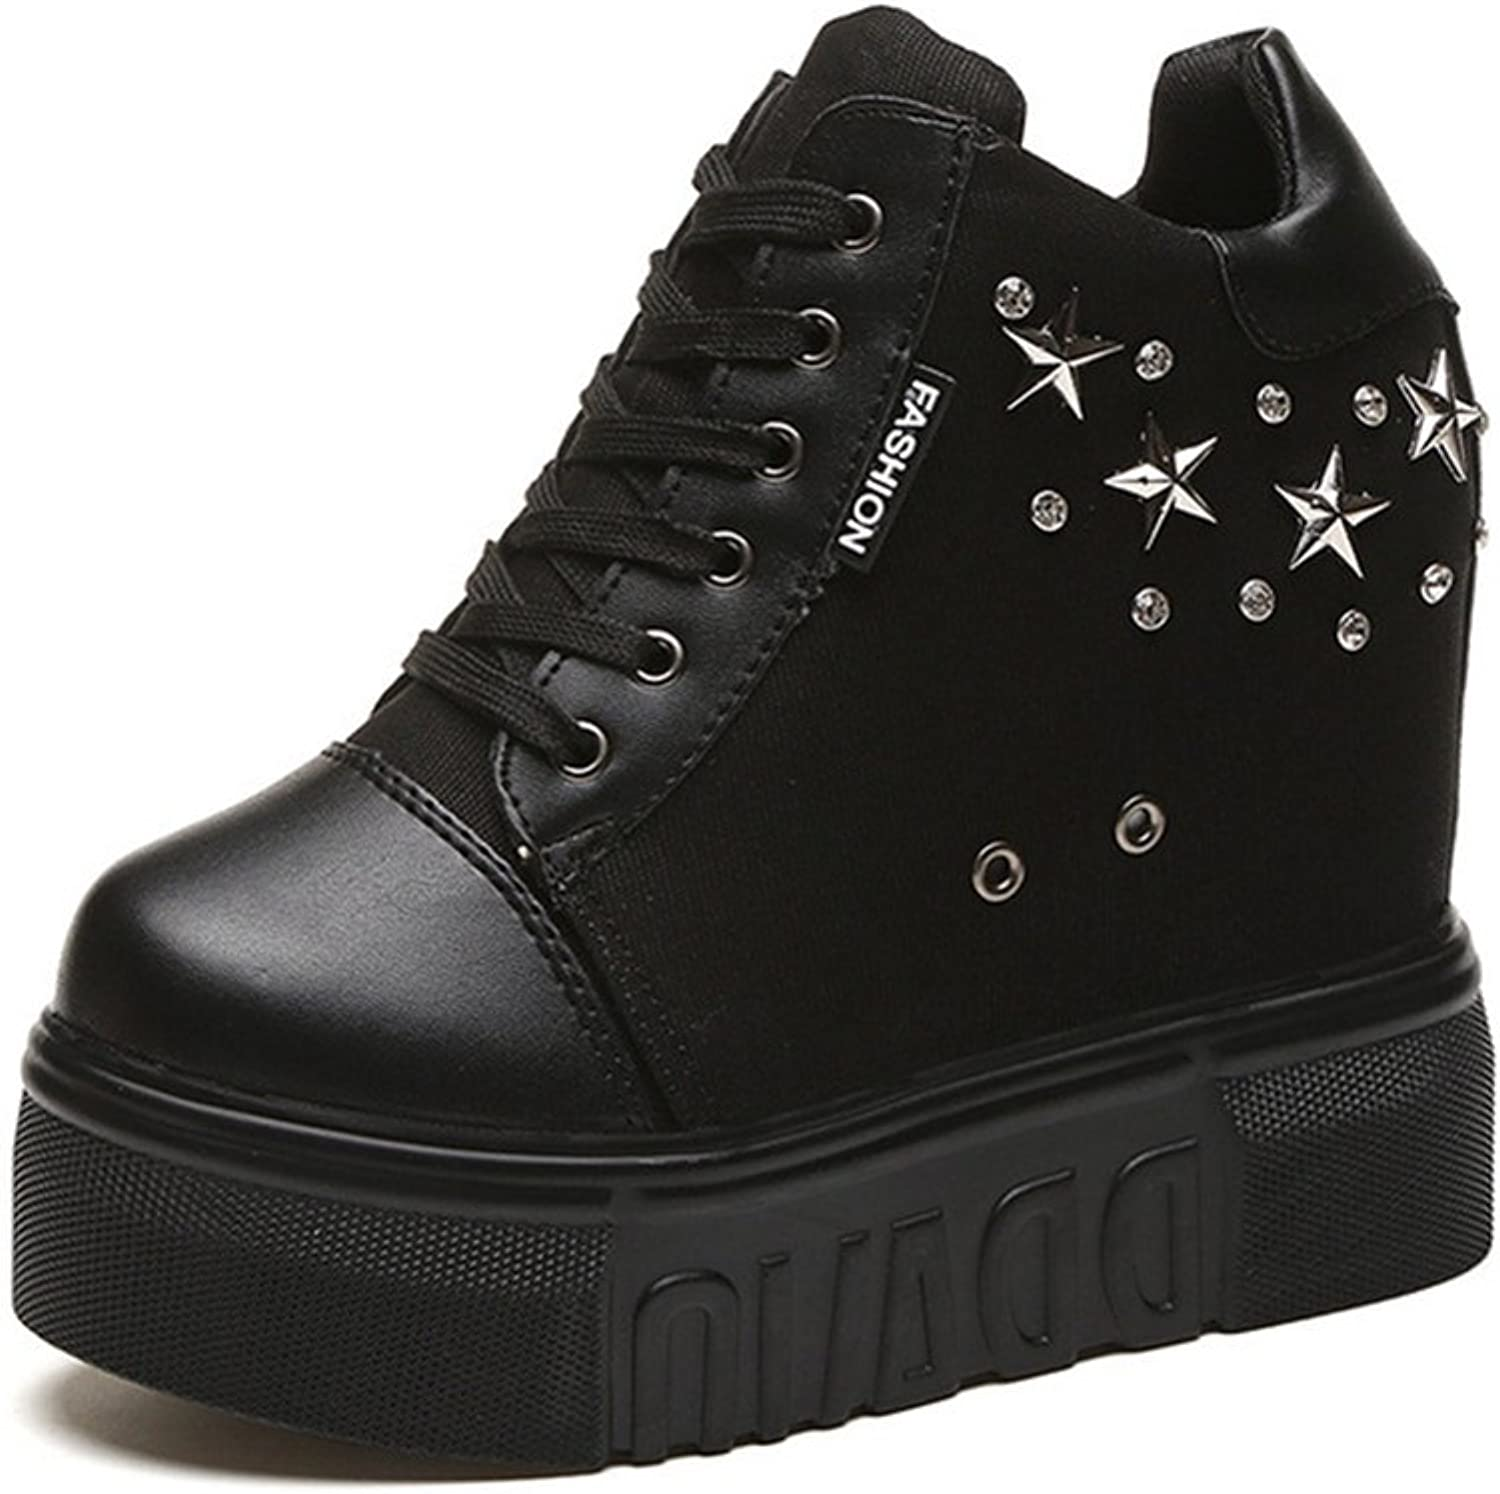 Btrada Women Comfortable Round Toe Lace-Up Decor Rivet Stars Casual shoes High Wedge shoes